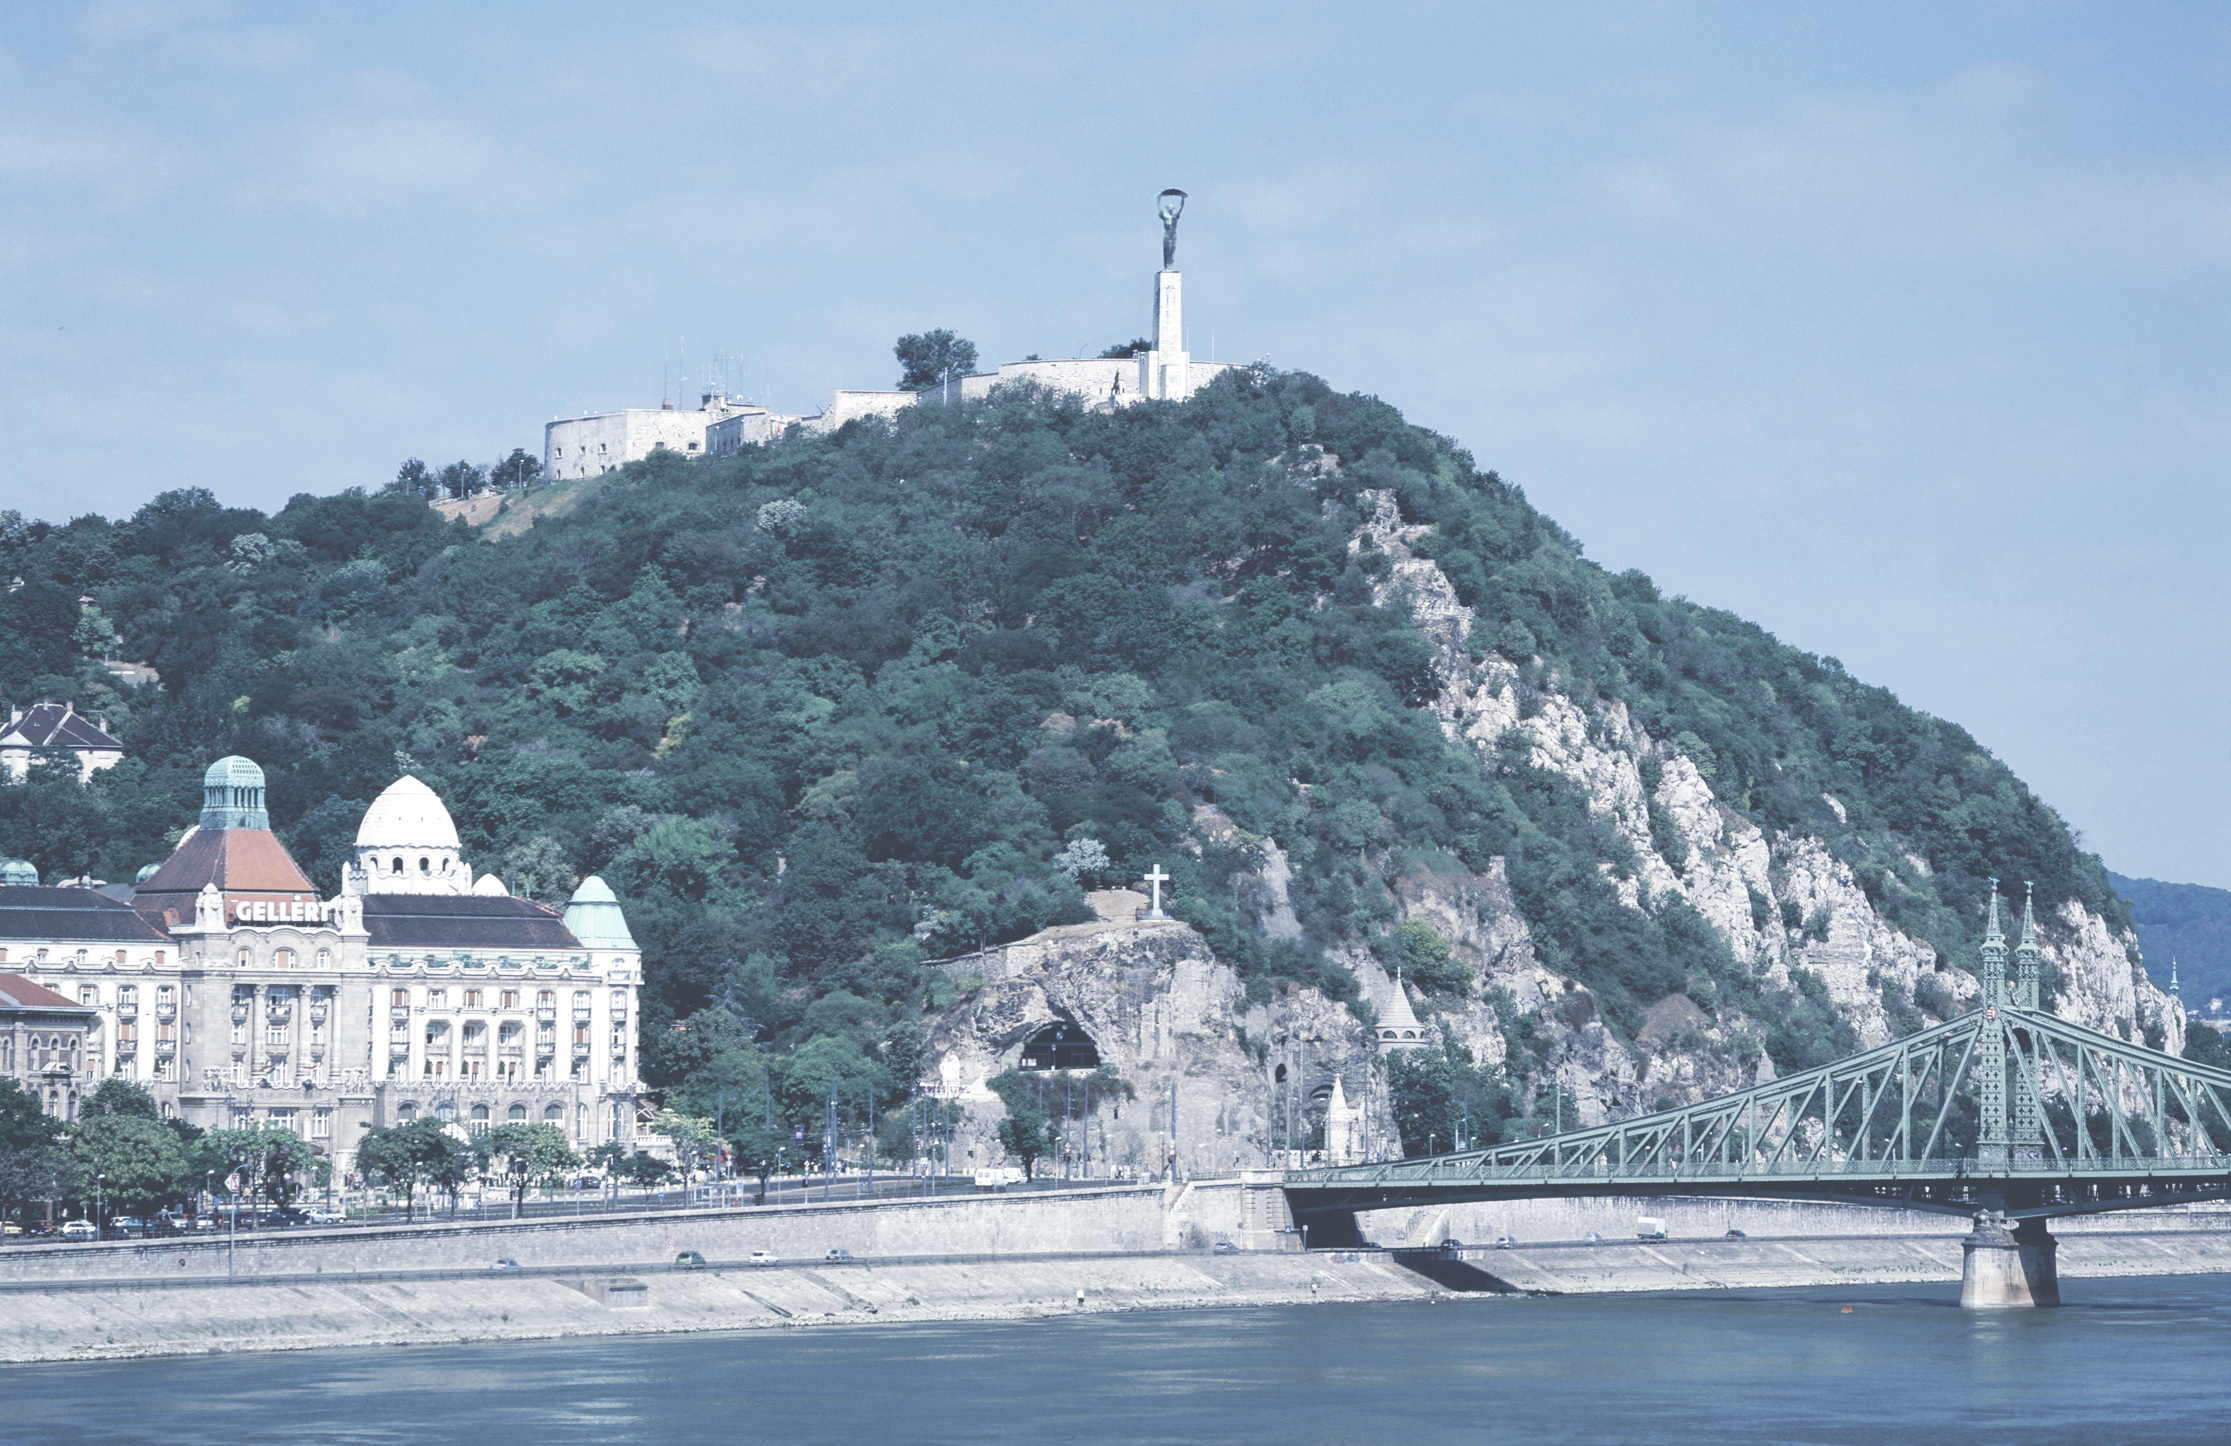 Gellért Hill / Citadella  This gemstone is one of the top tourist attractions of the city thanks to the magnificent panorama from the top of its cliffs facing the Danube.    Read more  ||  Map